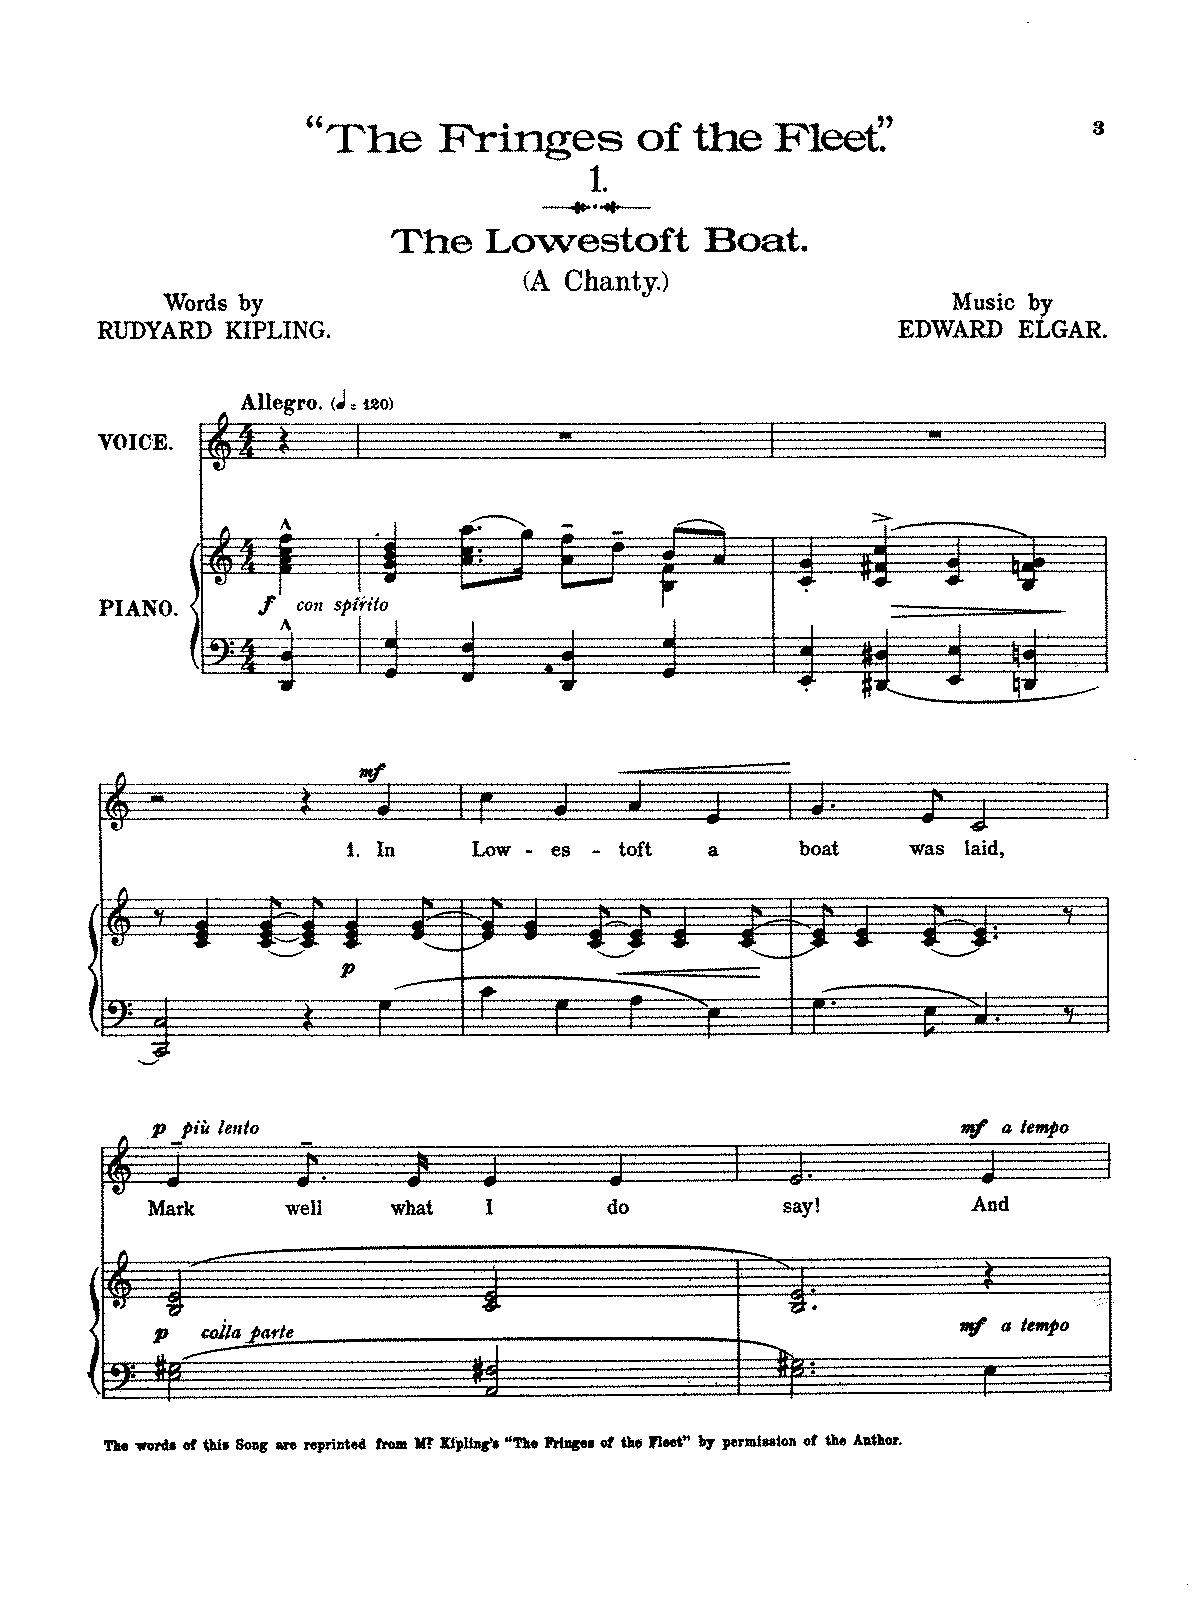 PMLP117889-Elgar - The Fringes of the Fleet - 4 Songs (voice and piano).pdf